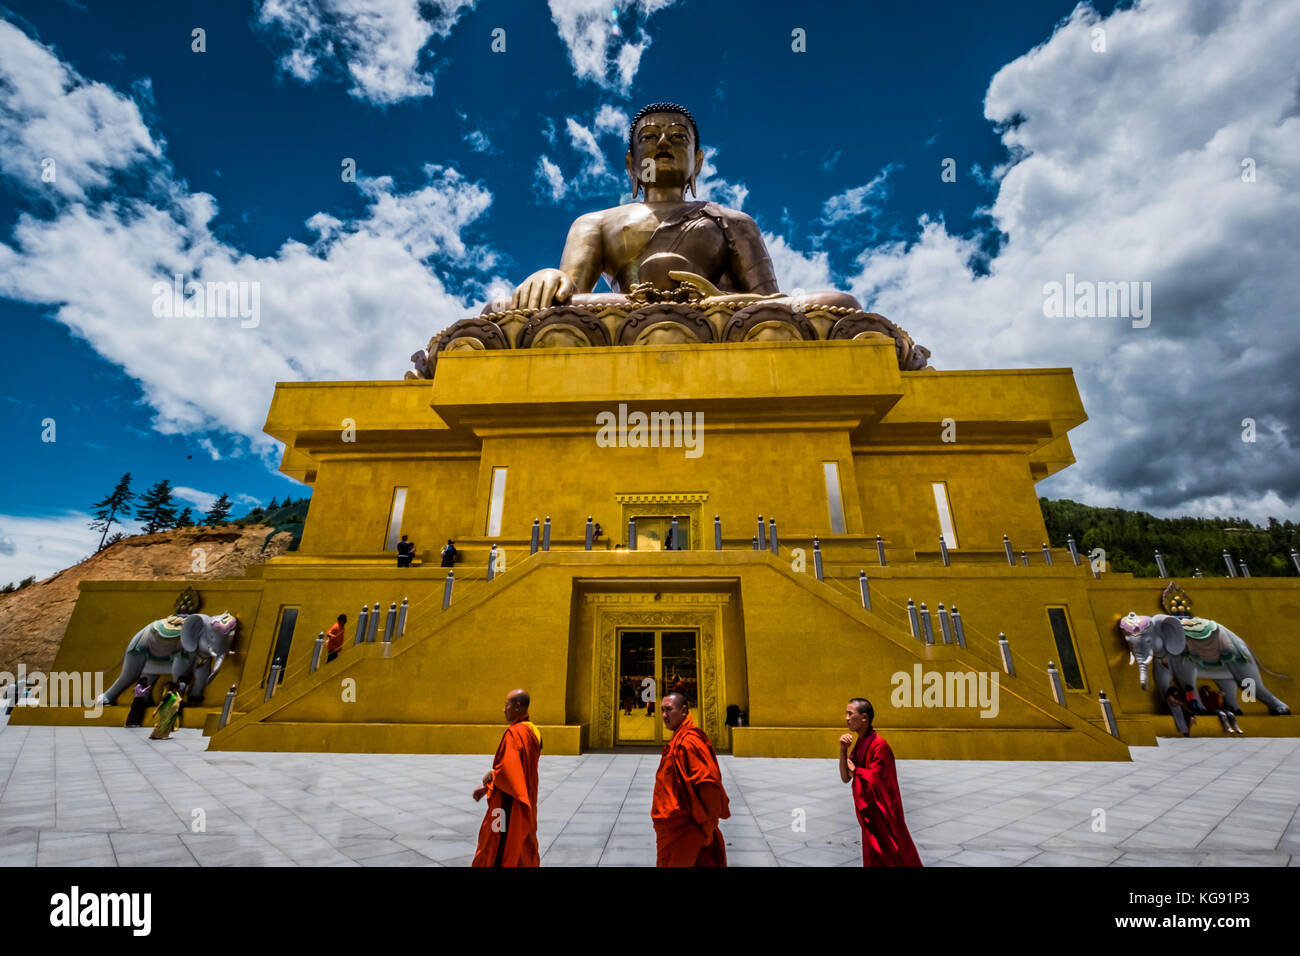 Monks walking by a giant Buddha statue in Bhutan - July 2017 - Stock Image